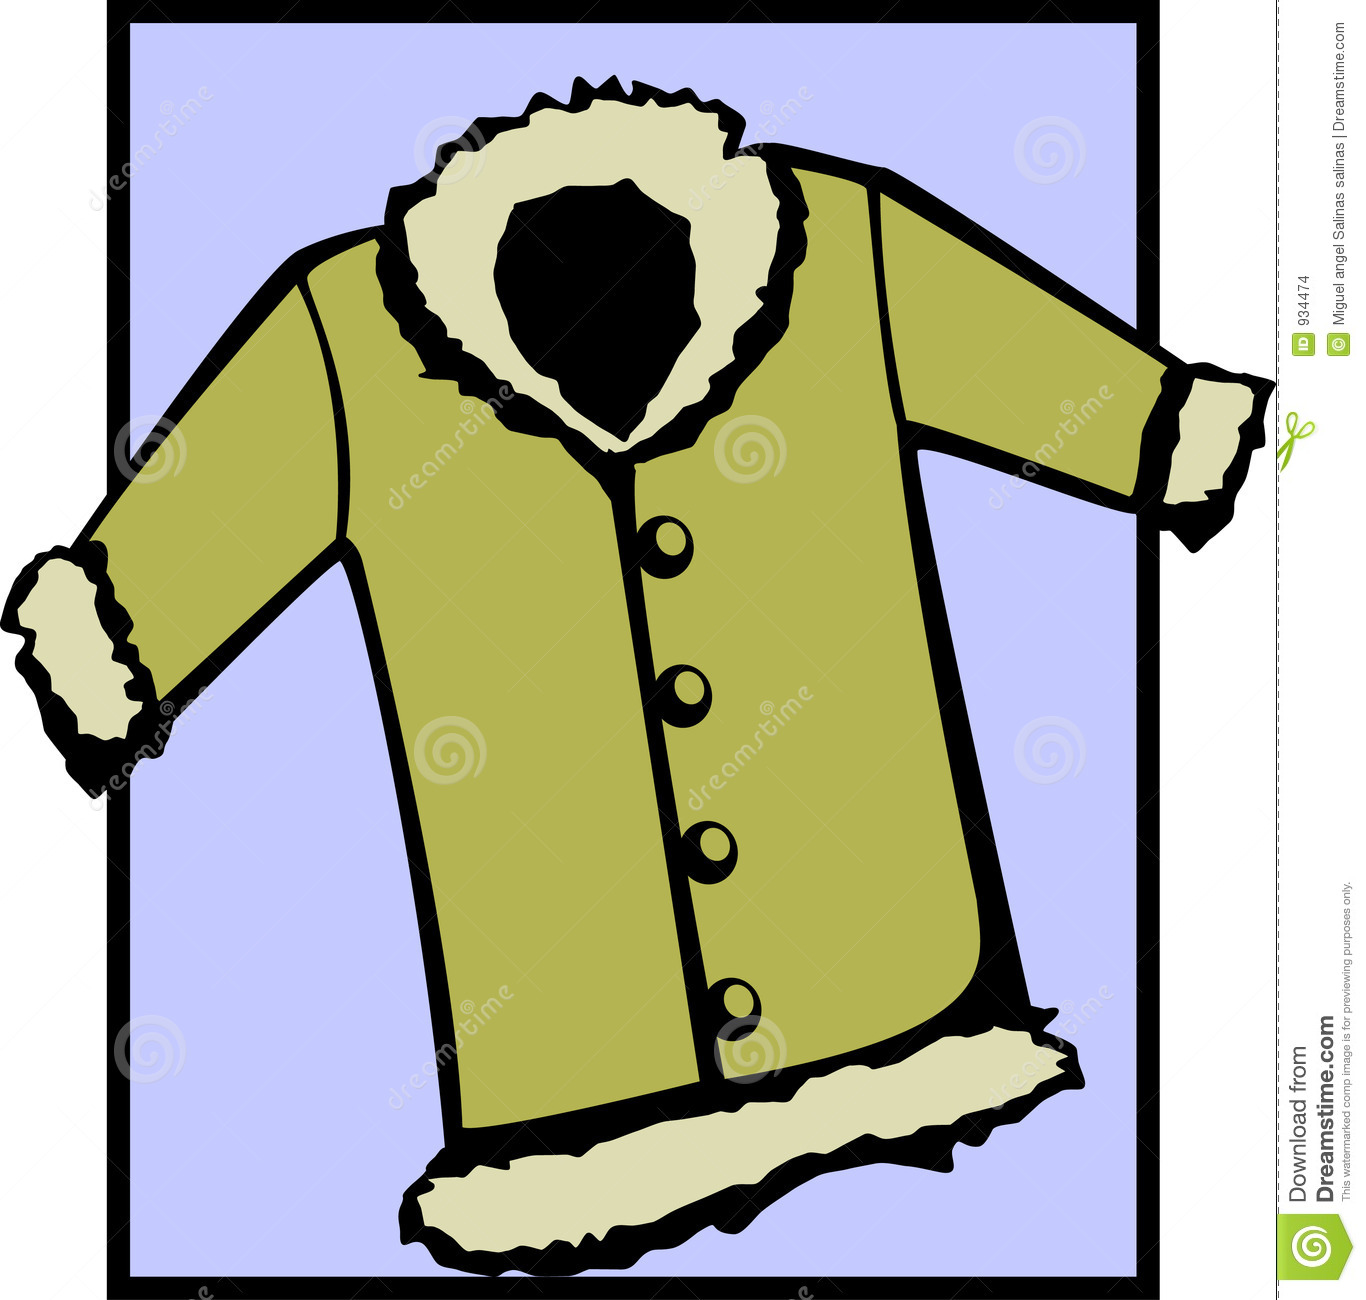 clipart of a jacket - photo #36